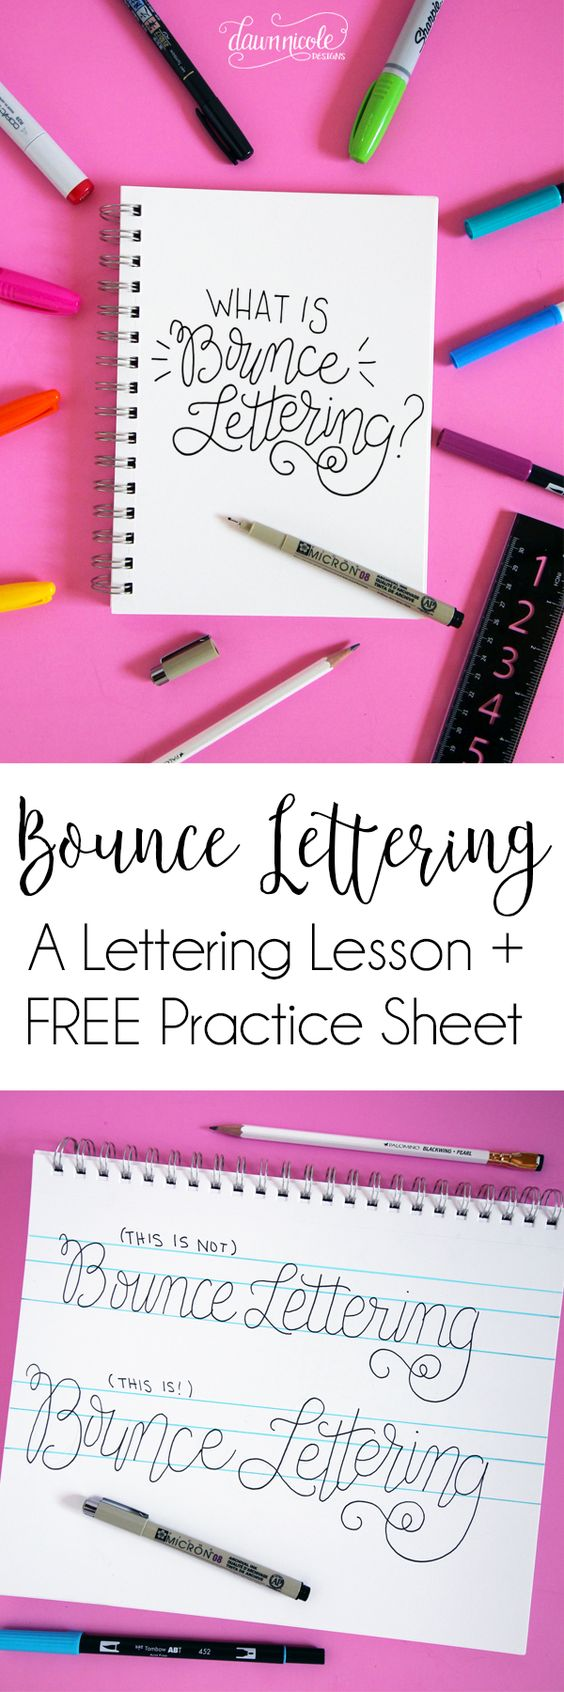 How to Do Bounce Lettering. What is Bounce Lettering? Find out in this lettering tutorial and grab the FREE Bounce Lettering Worksheet to…